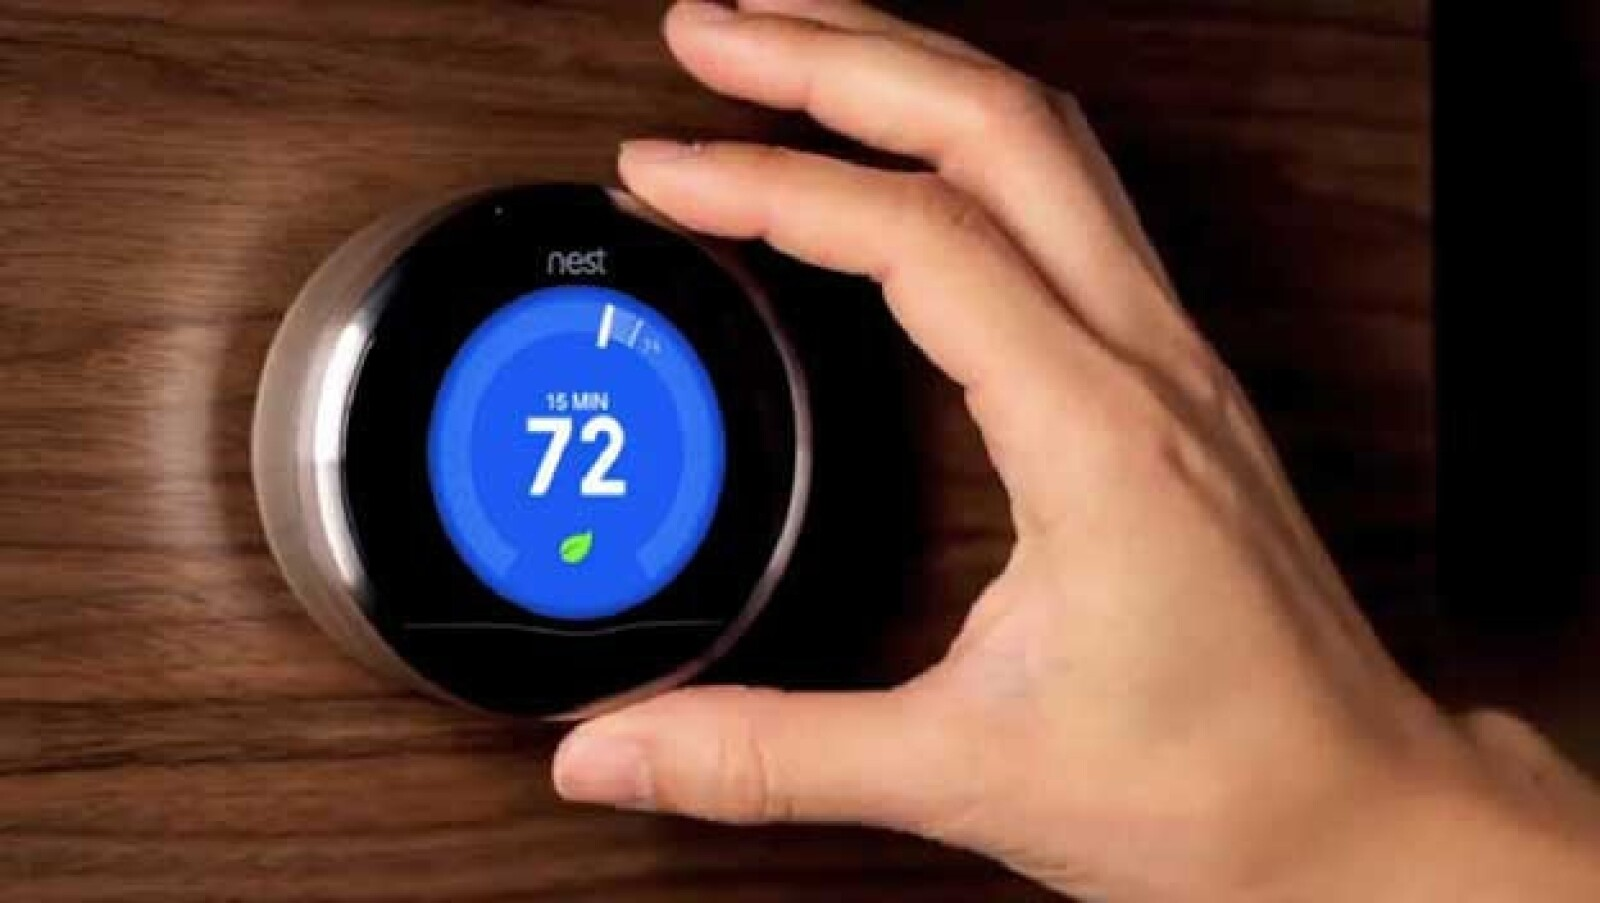 El termostato inteligente Nest